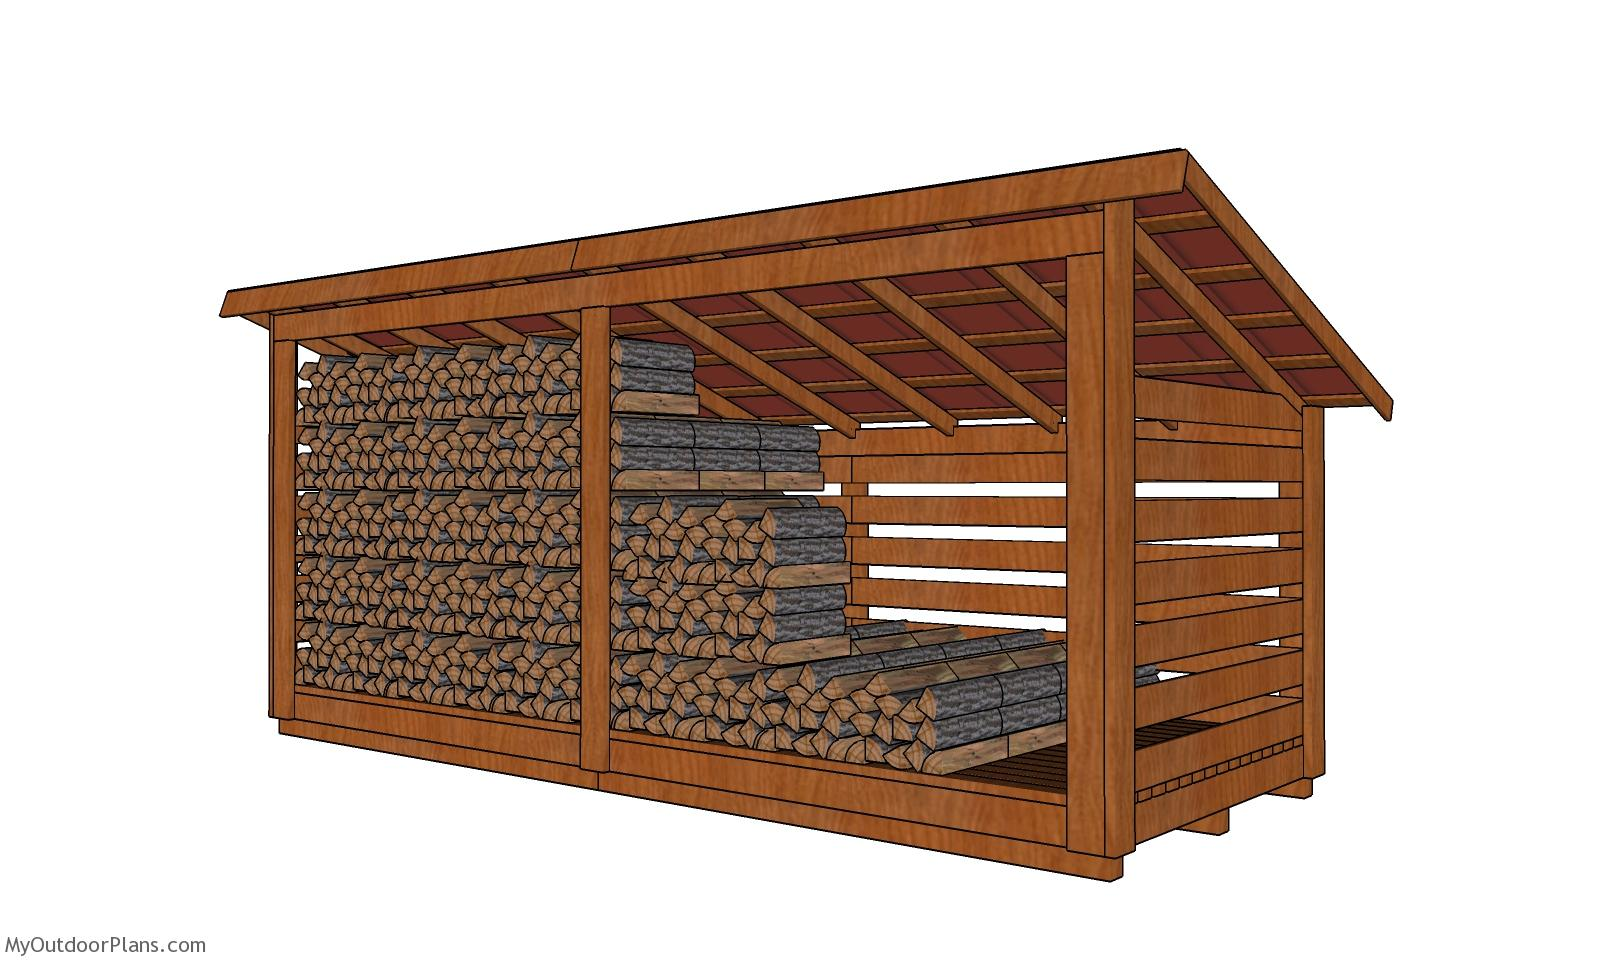 6x16 4 Cord Wood Storage Shed Plans